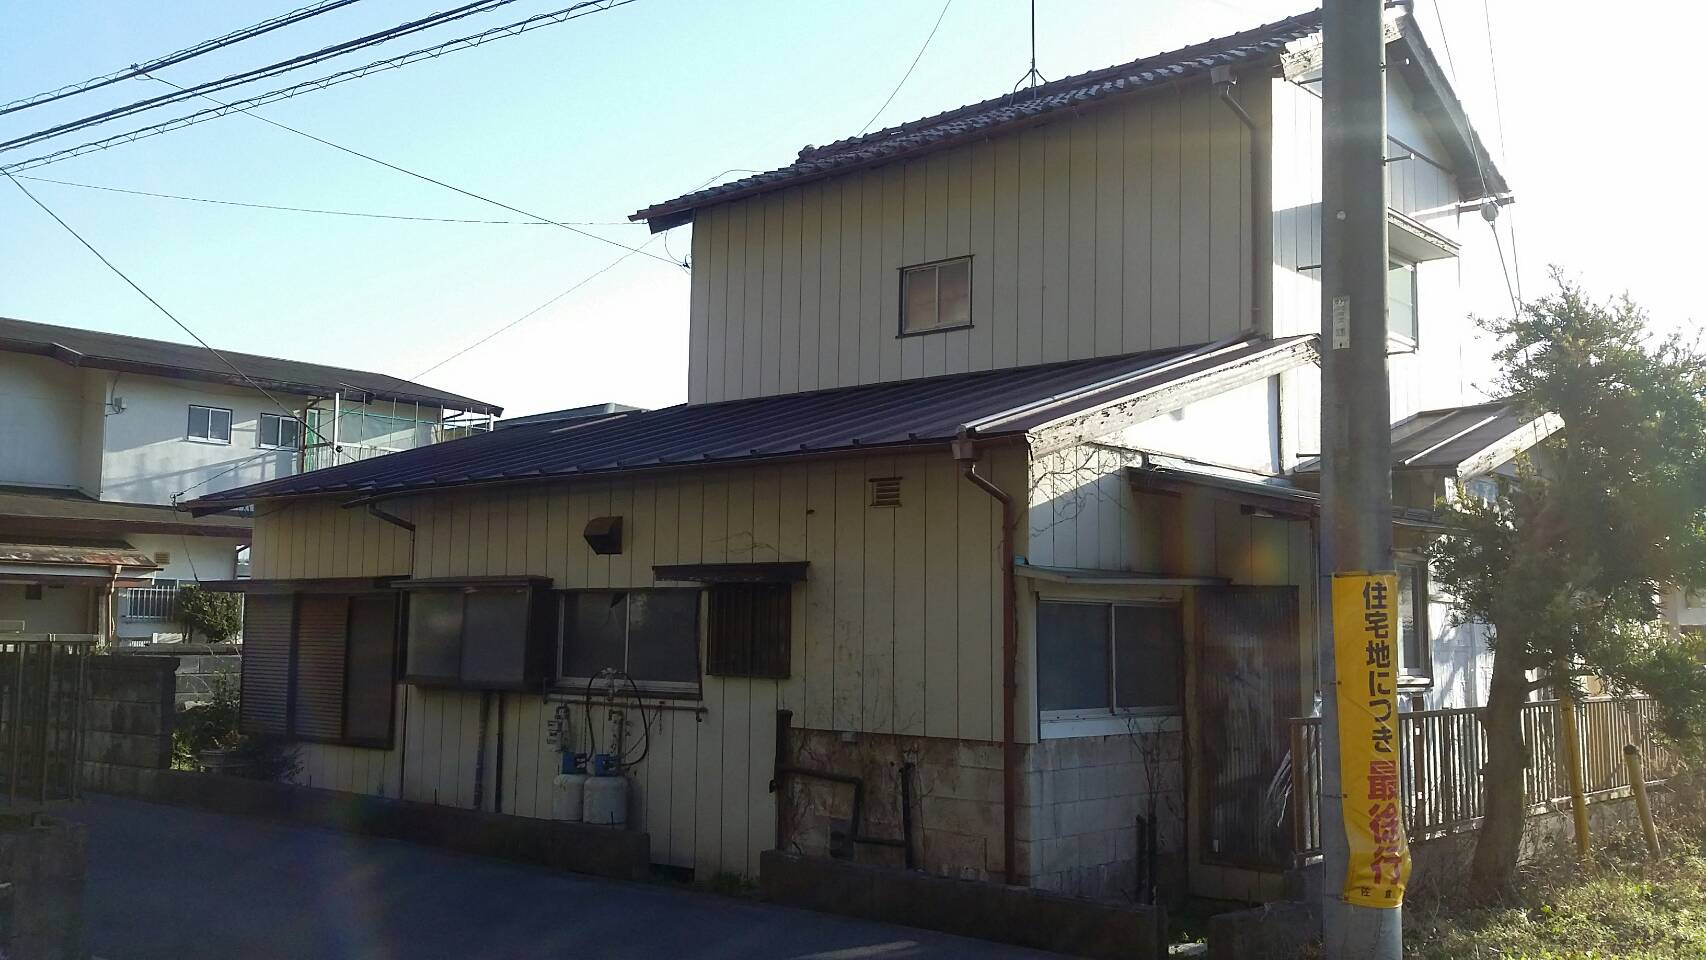 A image of 千葉県佐倉市 解体工事 【東京・埼玉・神奈川の解体工事なら東央建設へ】